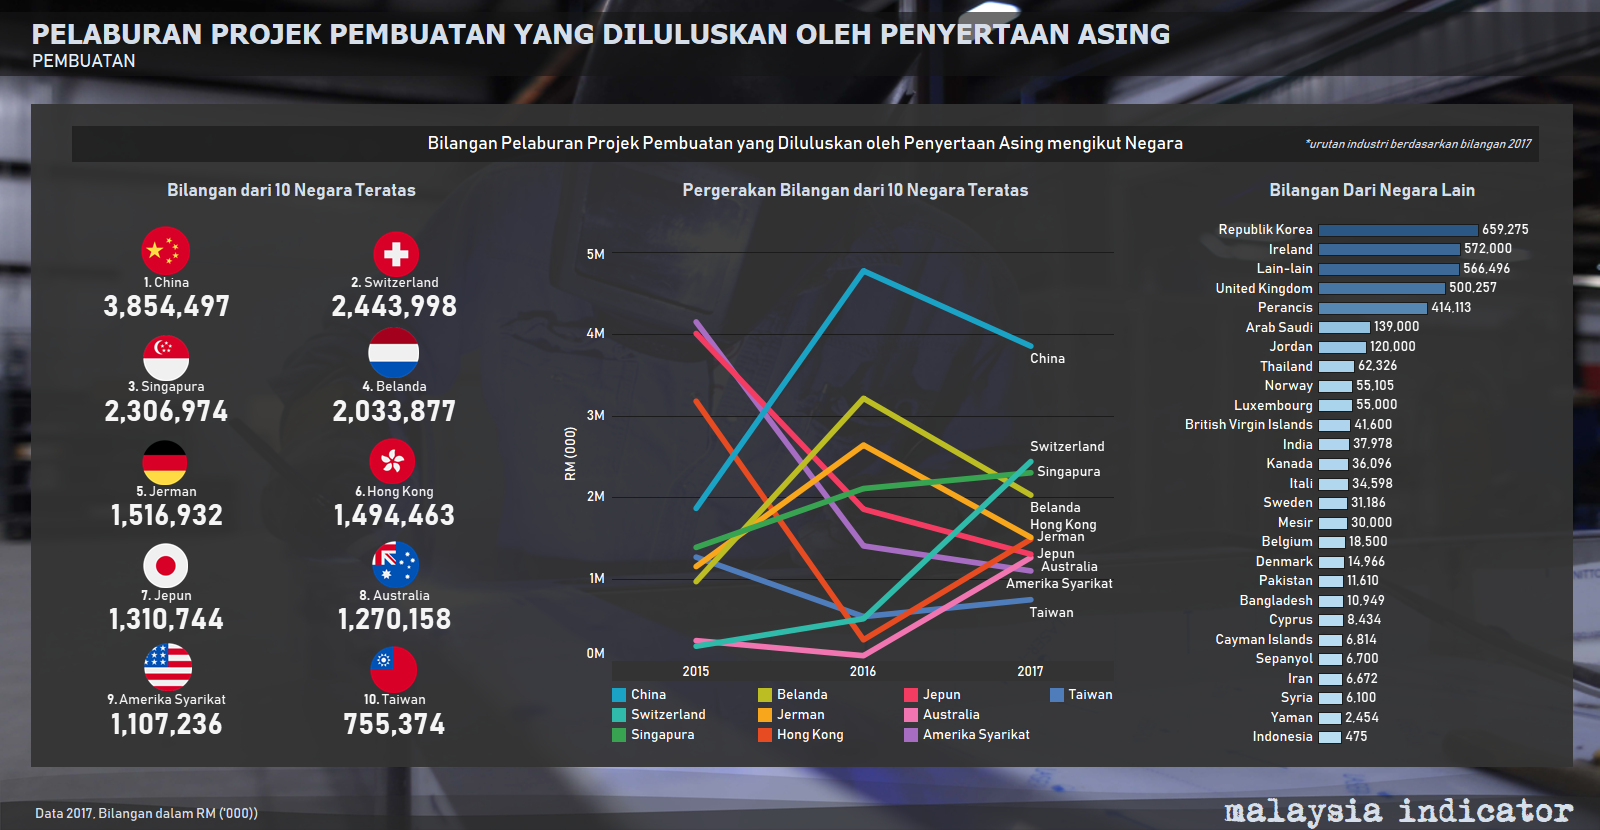 Malaysia, Malaysia Indicator, manufacturing sector, foreign investment, economy